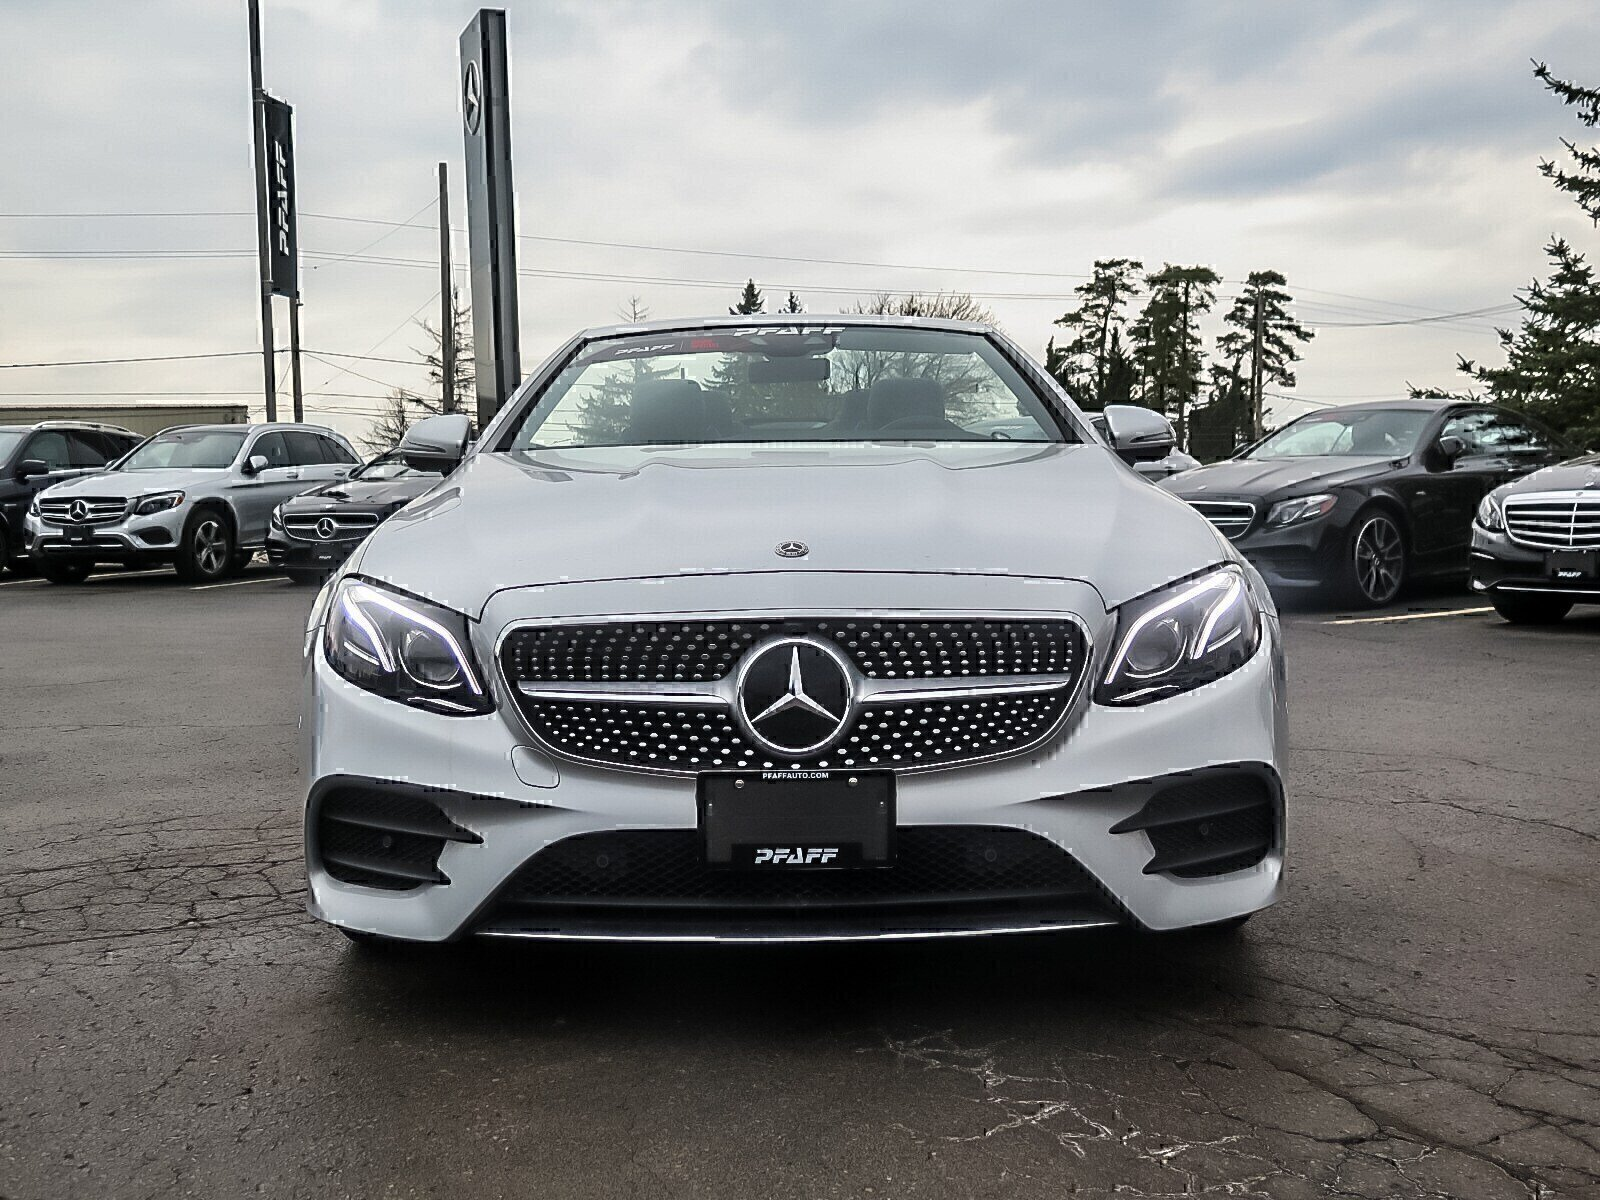 Certified Pre-Owned 2018 Mercedes-Benz E400 4MATIC Cabriolet